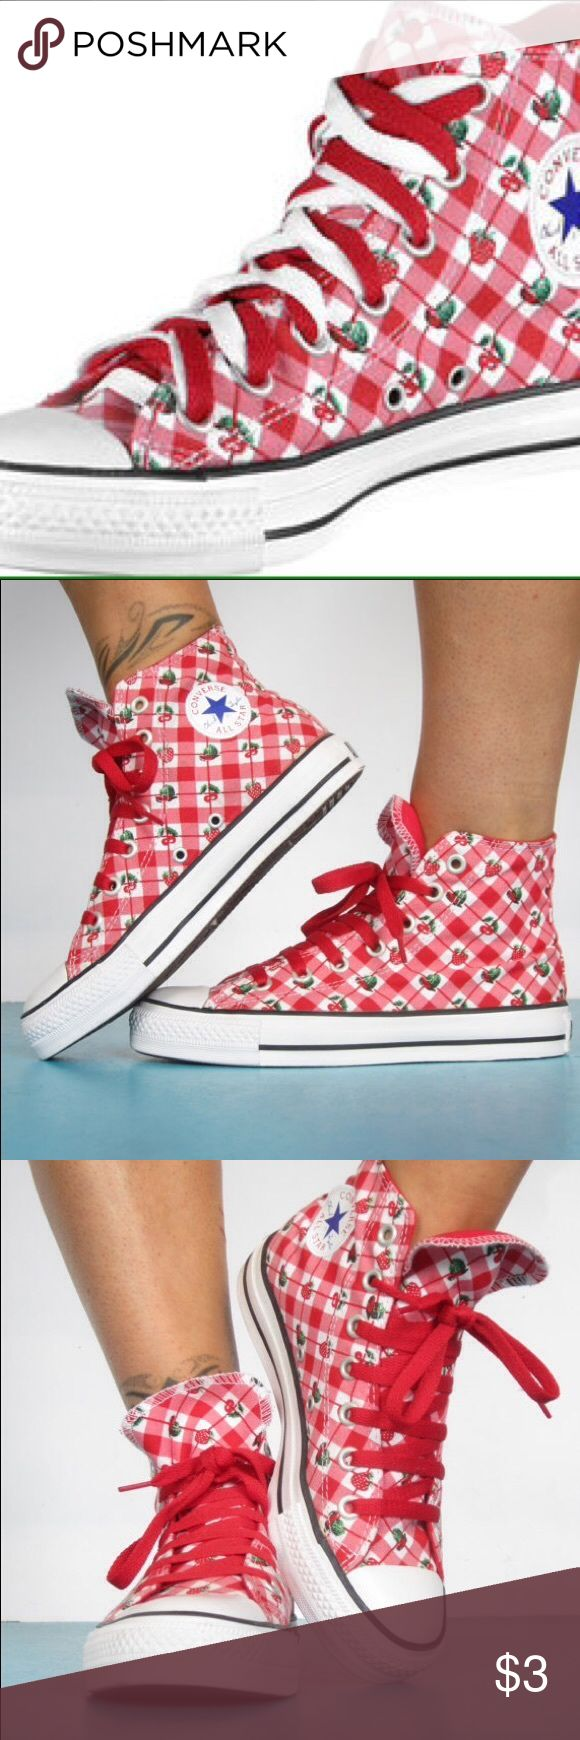 ISO : Converse Cherry Strawberry High Tops IN SEARCH OF ; DO NOT BUY !!!!!! i am looking for converse chuck taylor high top sneakers with a red & pink plaid / gingham print embellished with cherries & strawberries , as seen on luna lovegood in the harry potter series . i need a size 7 , 7.5 , or 8. i am also interested in any other luna lovegood memorabilia : exacts . thank you for all your help ! Converse Shoes Sneakers